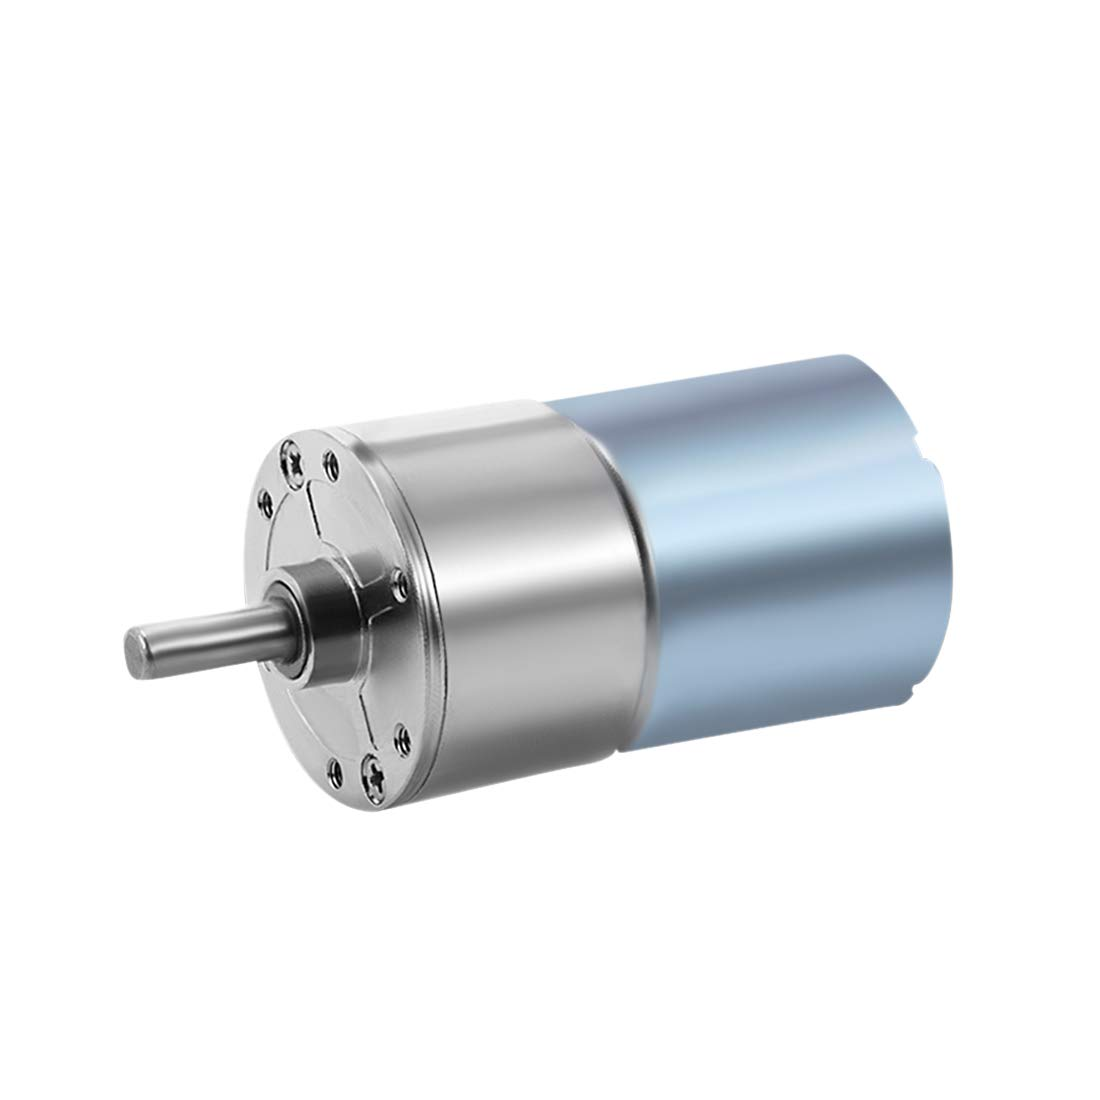 uxcell 12V DC 30RPM Gear Motor High Torque Electric Micro Speed Reduction Geared Motor Centric Output Shaft a16071400ux0597